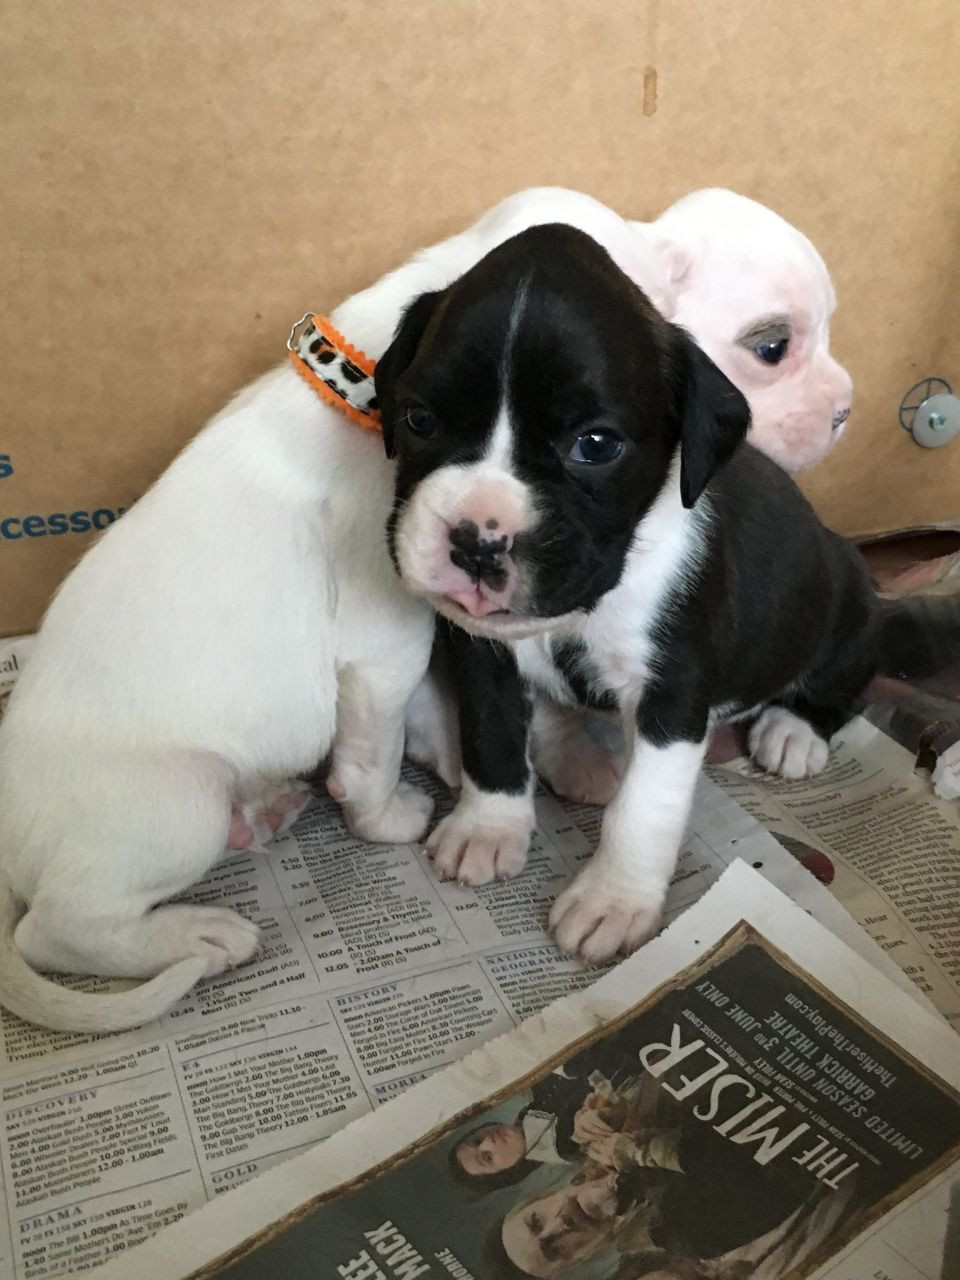 We offer 31 Boxer puppies for sale in California. These Boxer puppies located in California come from different cities, including, RIVERSIDE, RIVERBANK, OCEANSIDE, MORENO VALLEY, MILLVILLE, Madera, LOS ANGELES, Lake Elsinore, DOWNEY, CARMICHAEL, BLUE LAKE, BEVERLY HILLS.